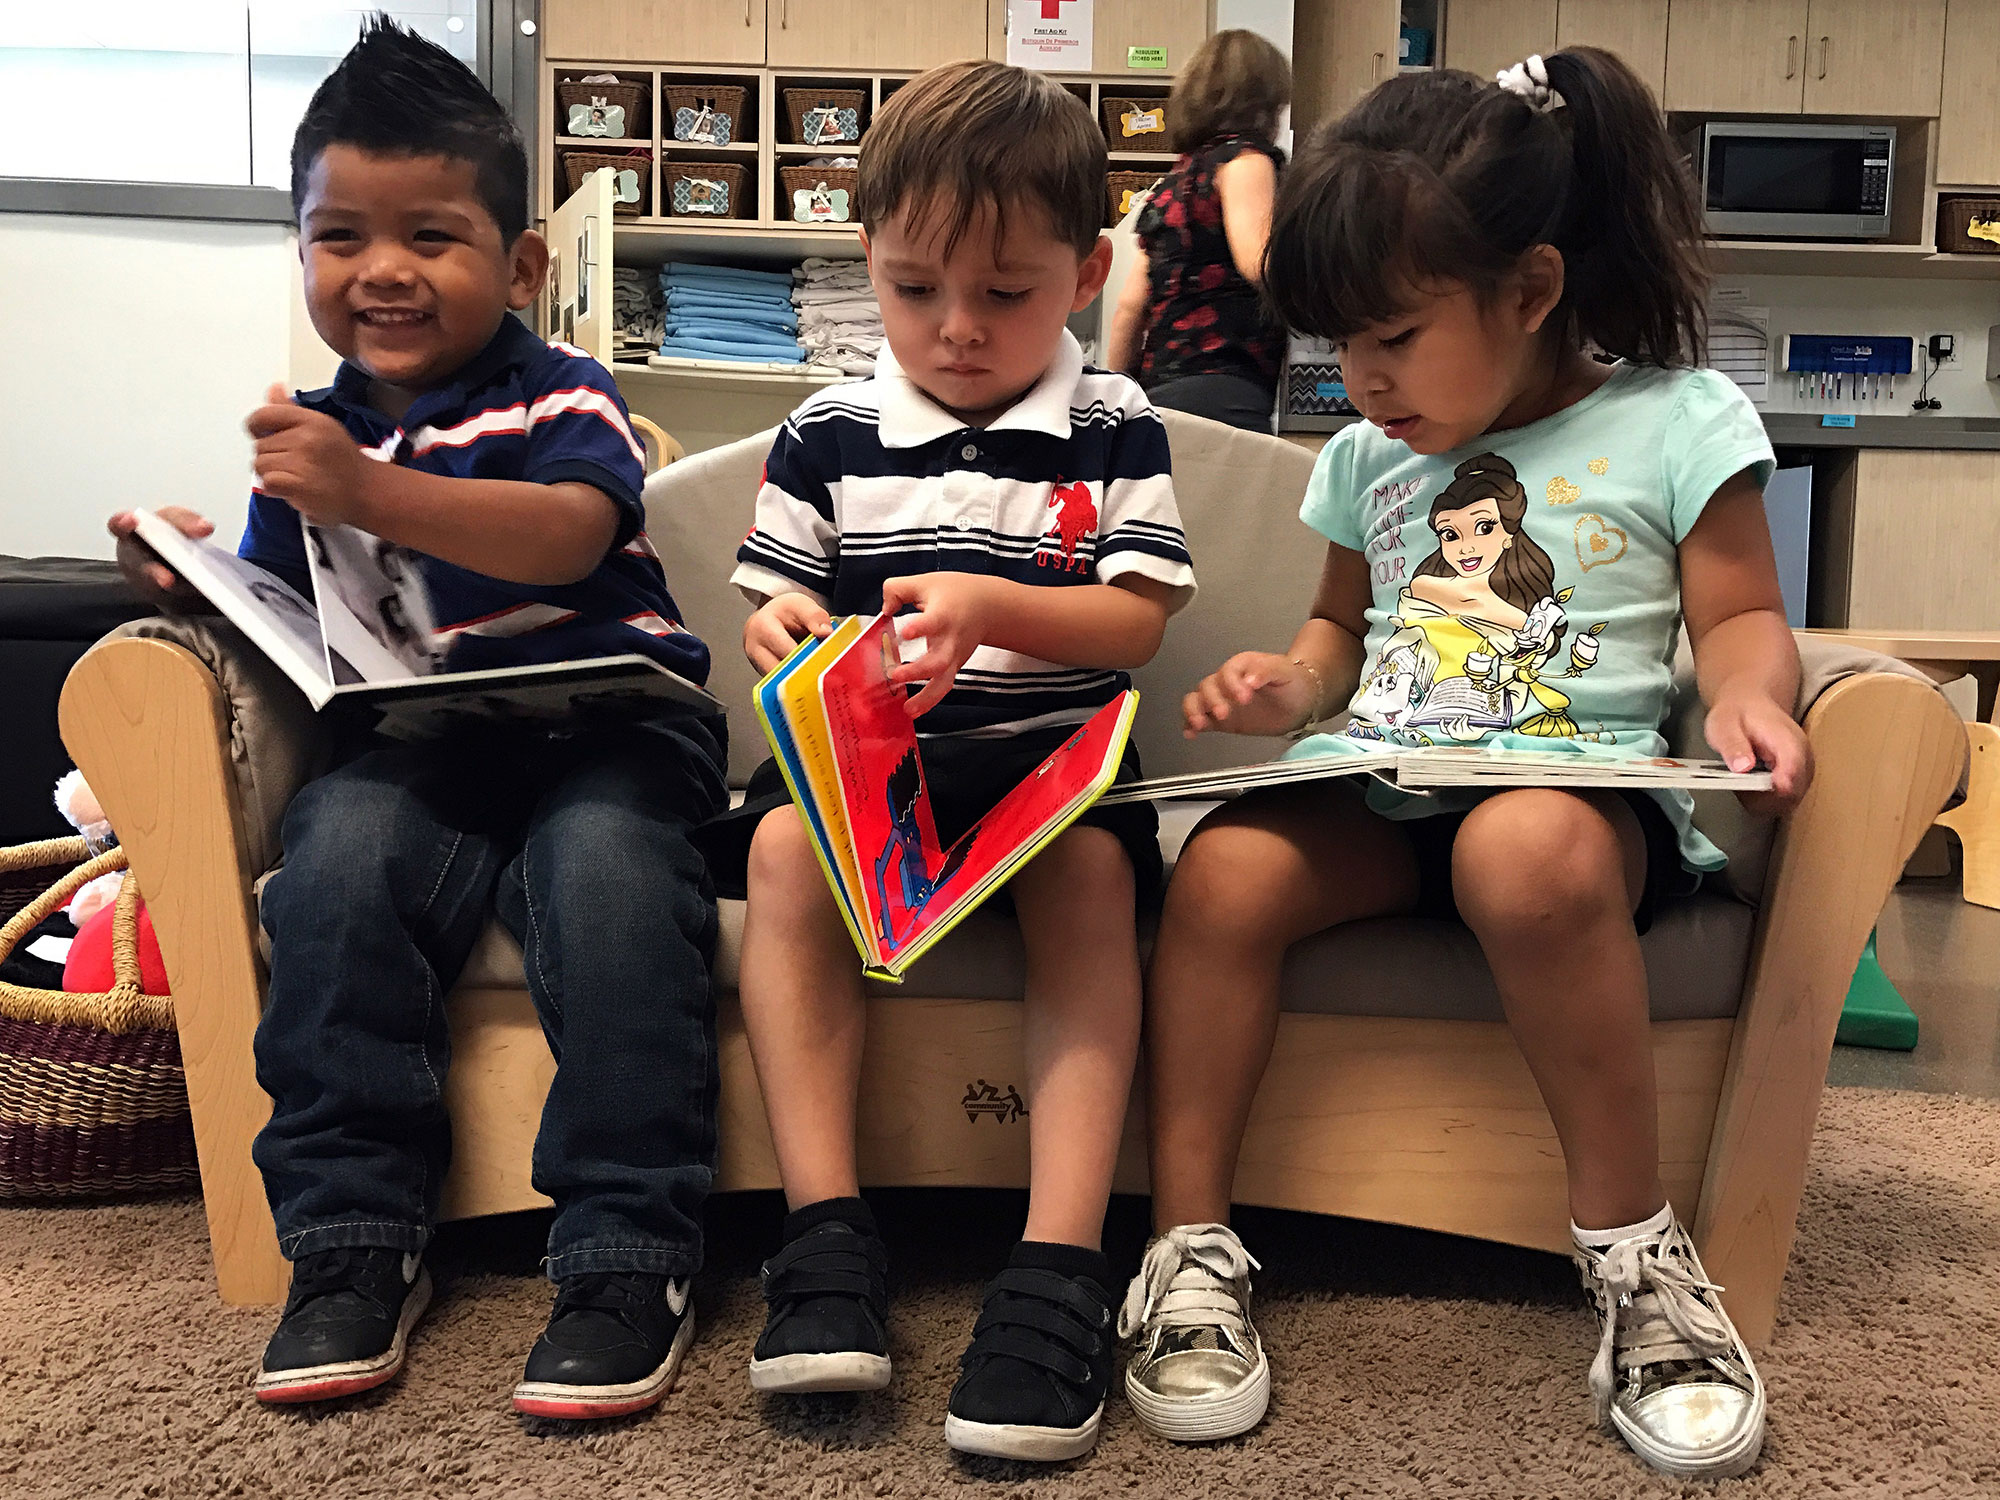 OPINION: Child care is just as important as preschool